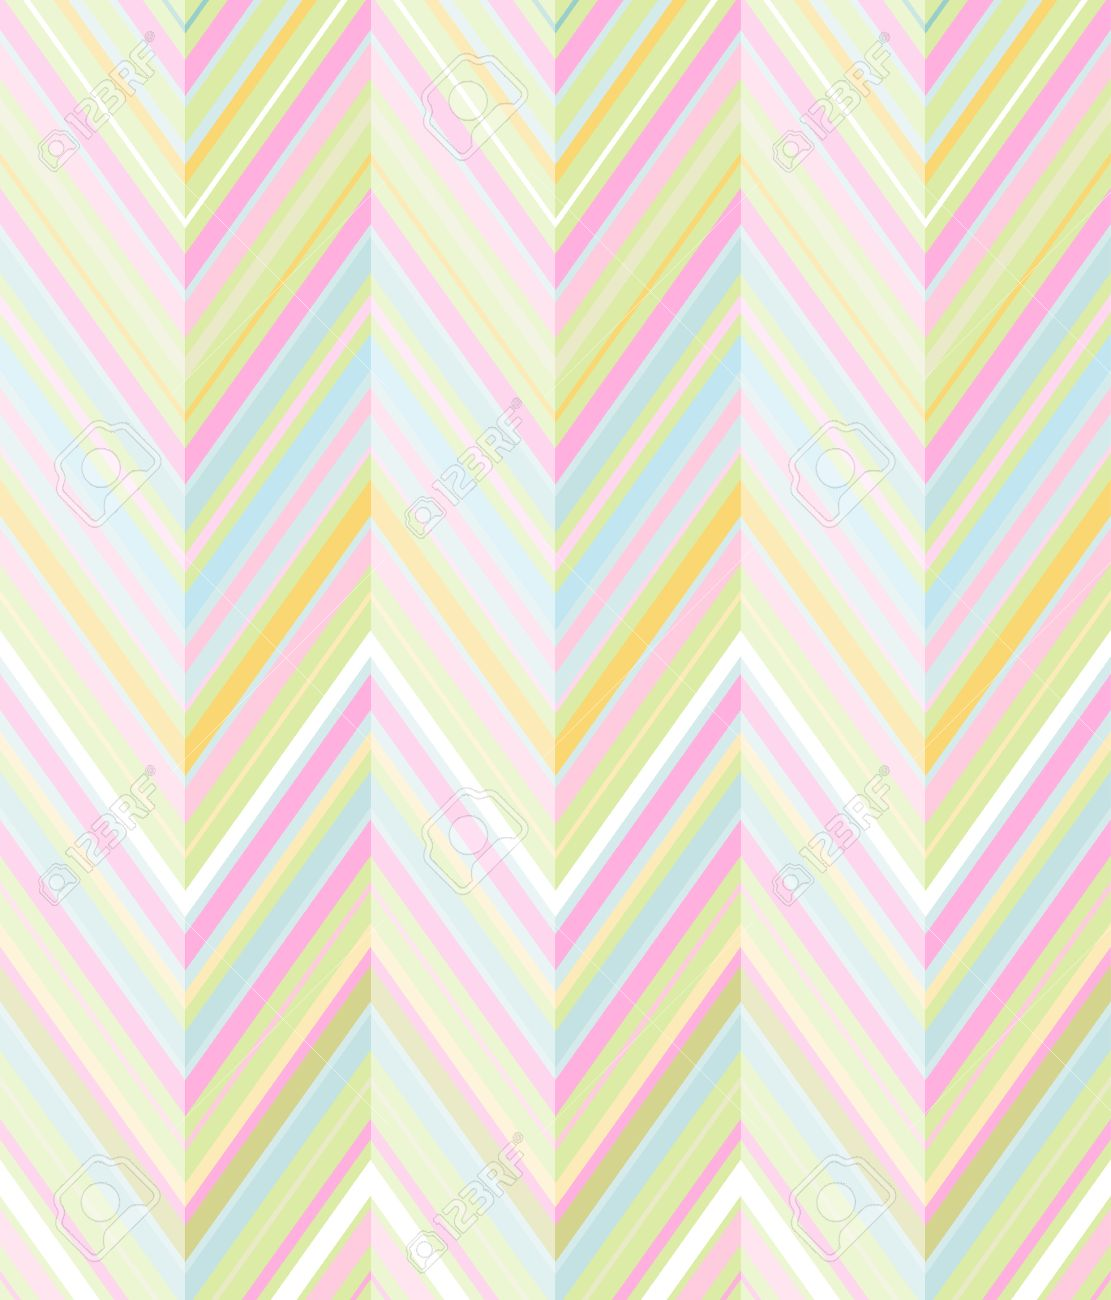 Pastel Shades fun and colorful background of diagonal lines in pastel shades